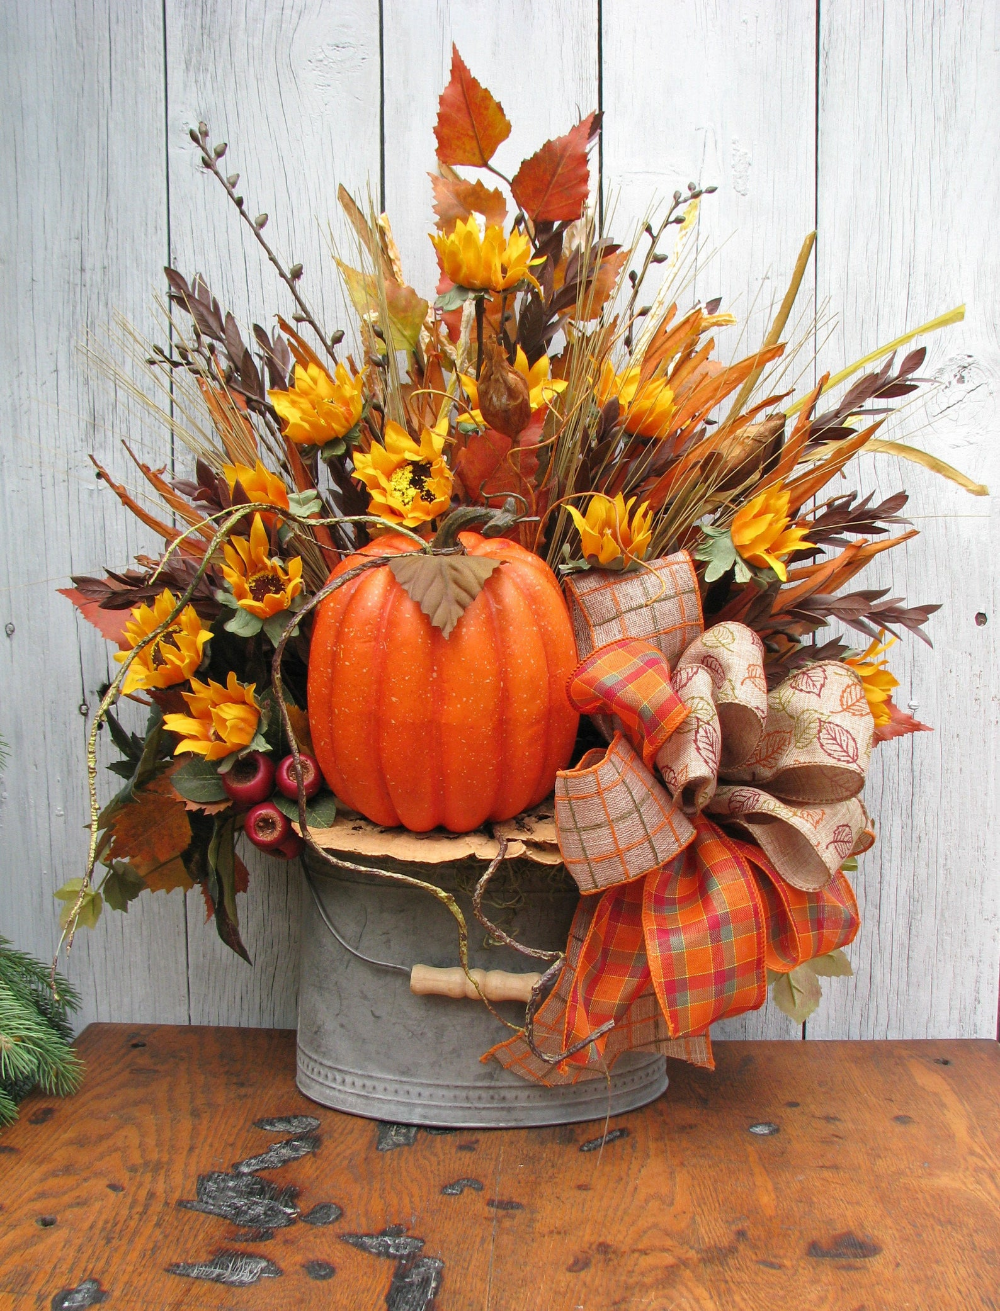 Rustic Fall Centerpiece Thanksgiving Table Centerpiece Wreathbury Lane With Images Rustic Fall Centerpieces Harvest Decorations Fall Thanksgiving Decor